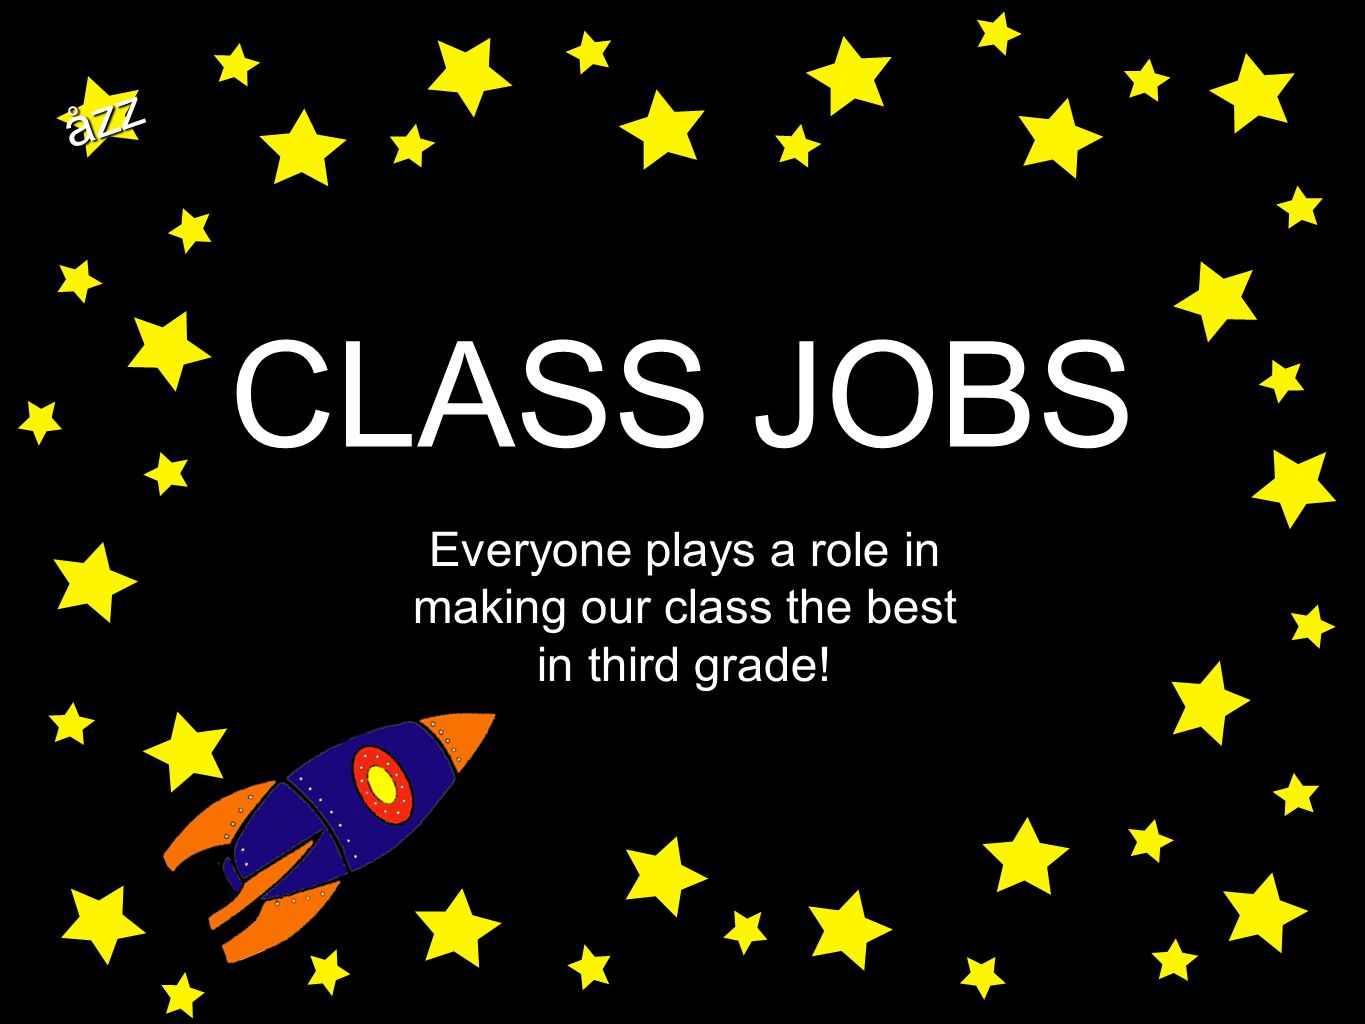 åzz CLASS JOBS Everyone plays a role in making our class the best in third grade!